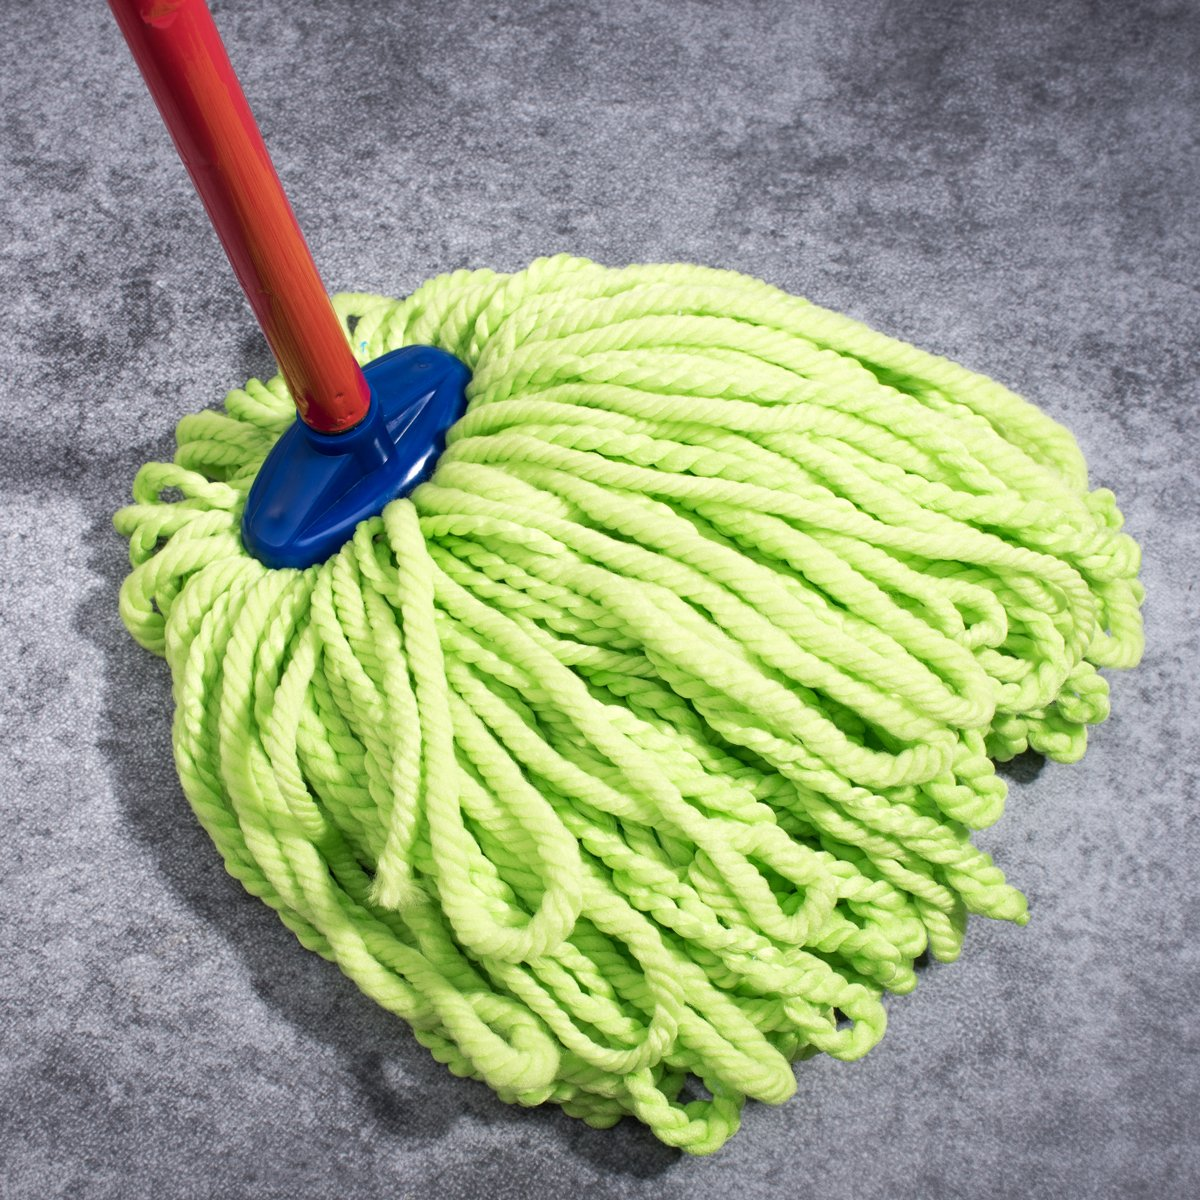 QIPENG 12'' Professional Microfiber Mop Head 4 Pack, Washable Wet and Dry Mop Heads, Super Absorbent Mop (Green) by QIPENG (Image #6)